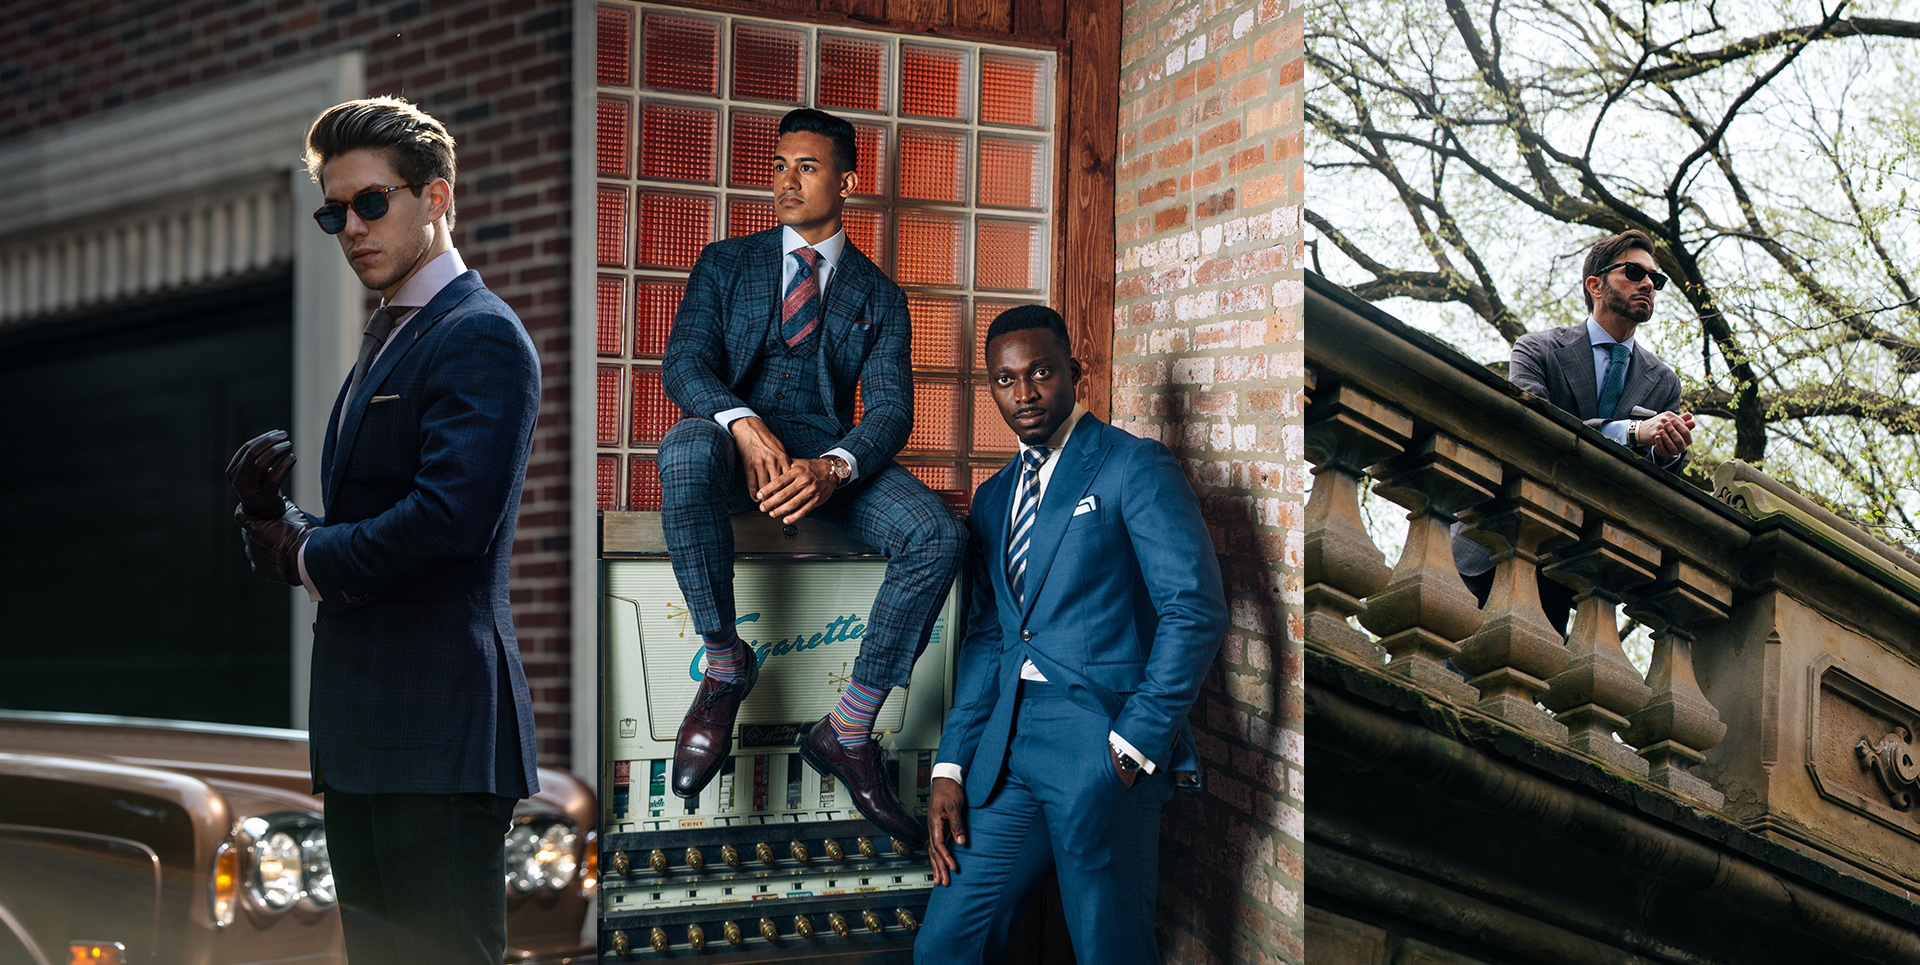 Daniel George Bespoke Suits